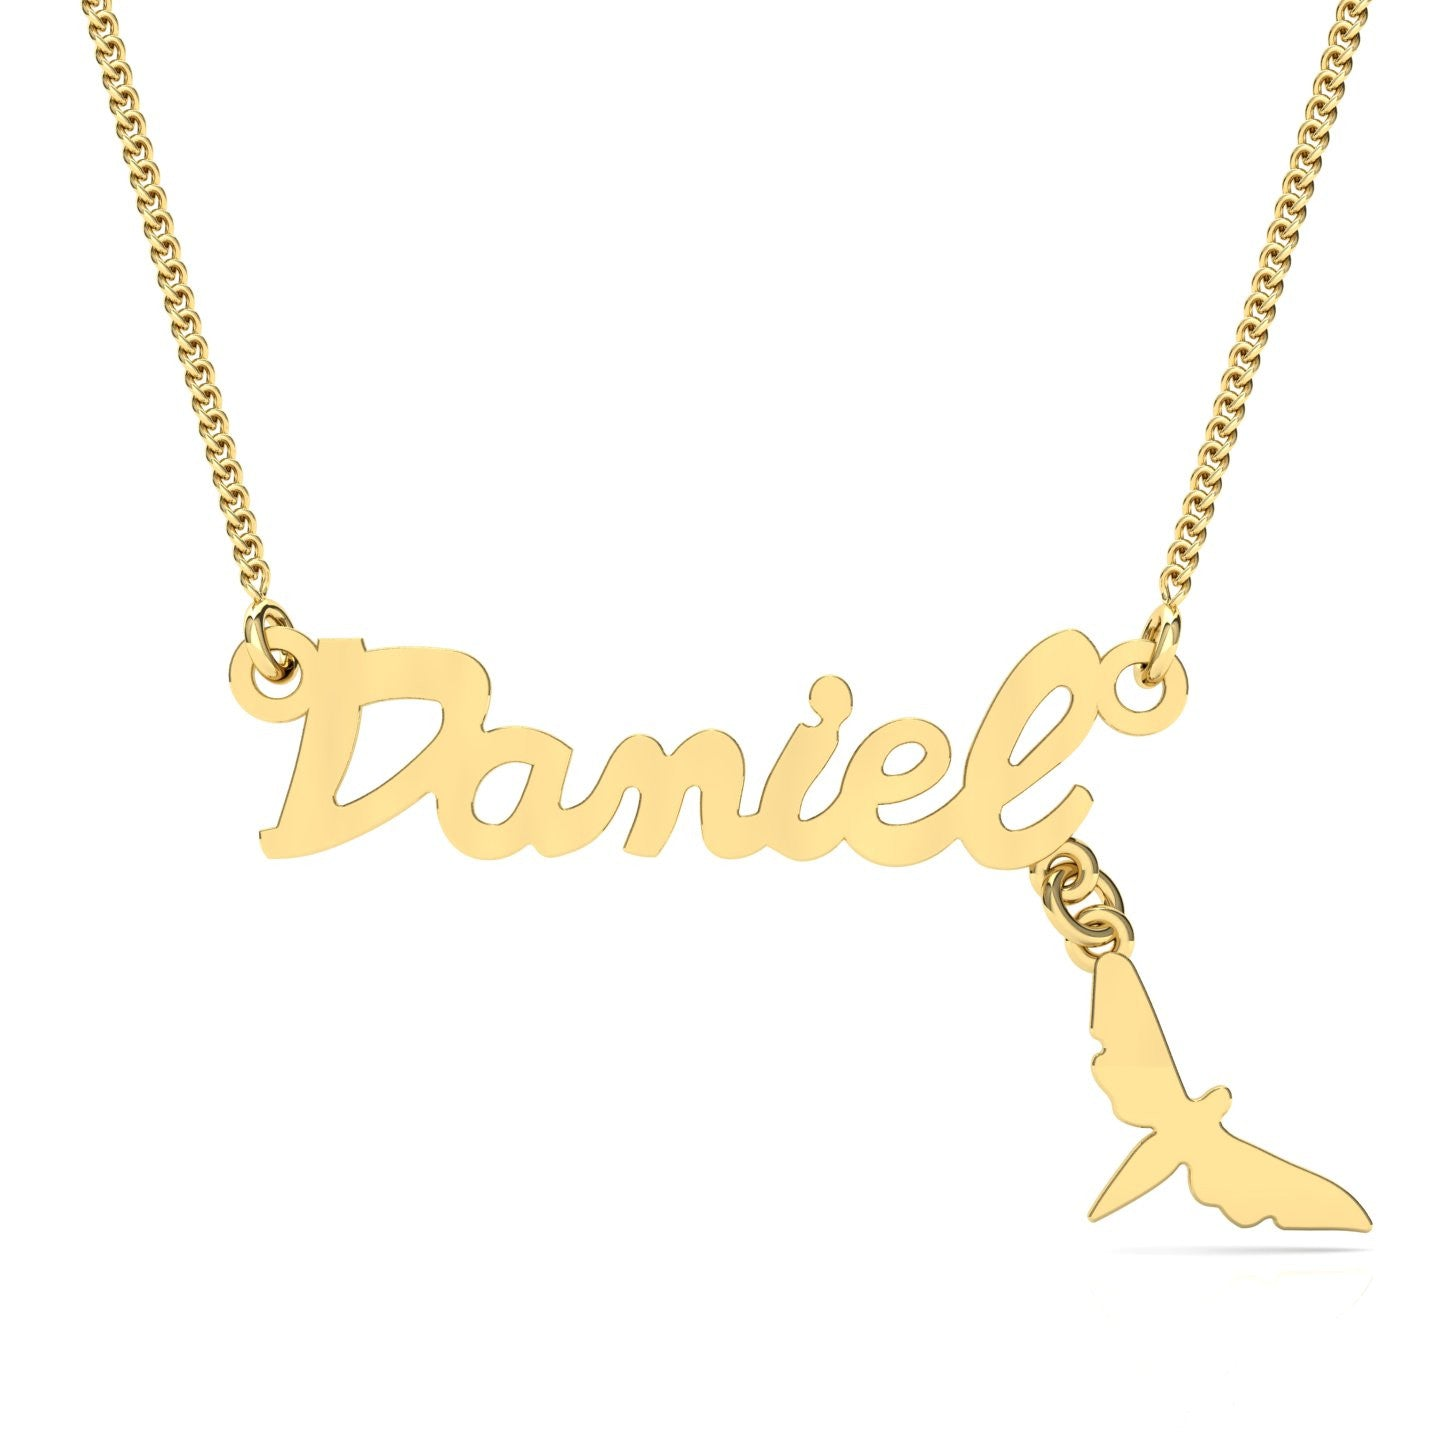 gold name tyche necklace jewellery product diamond nyc yg script